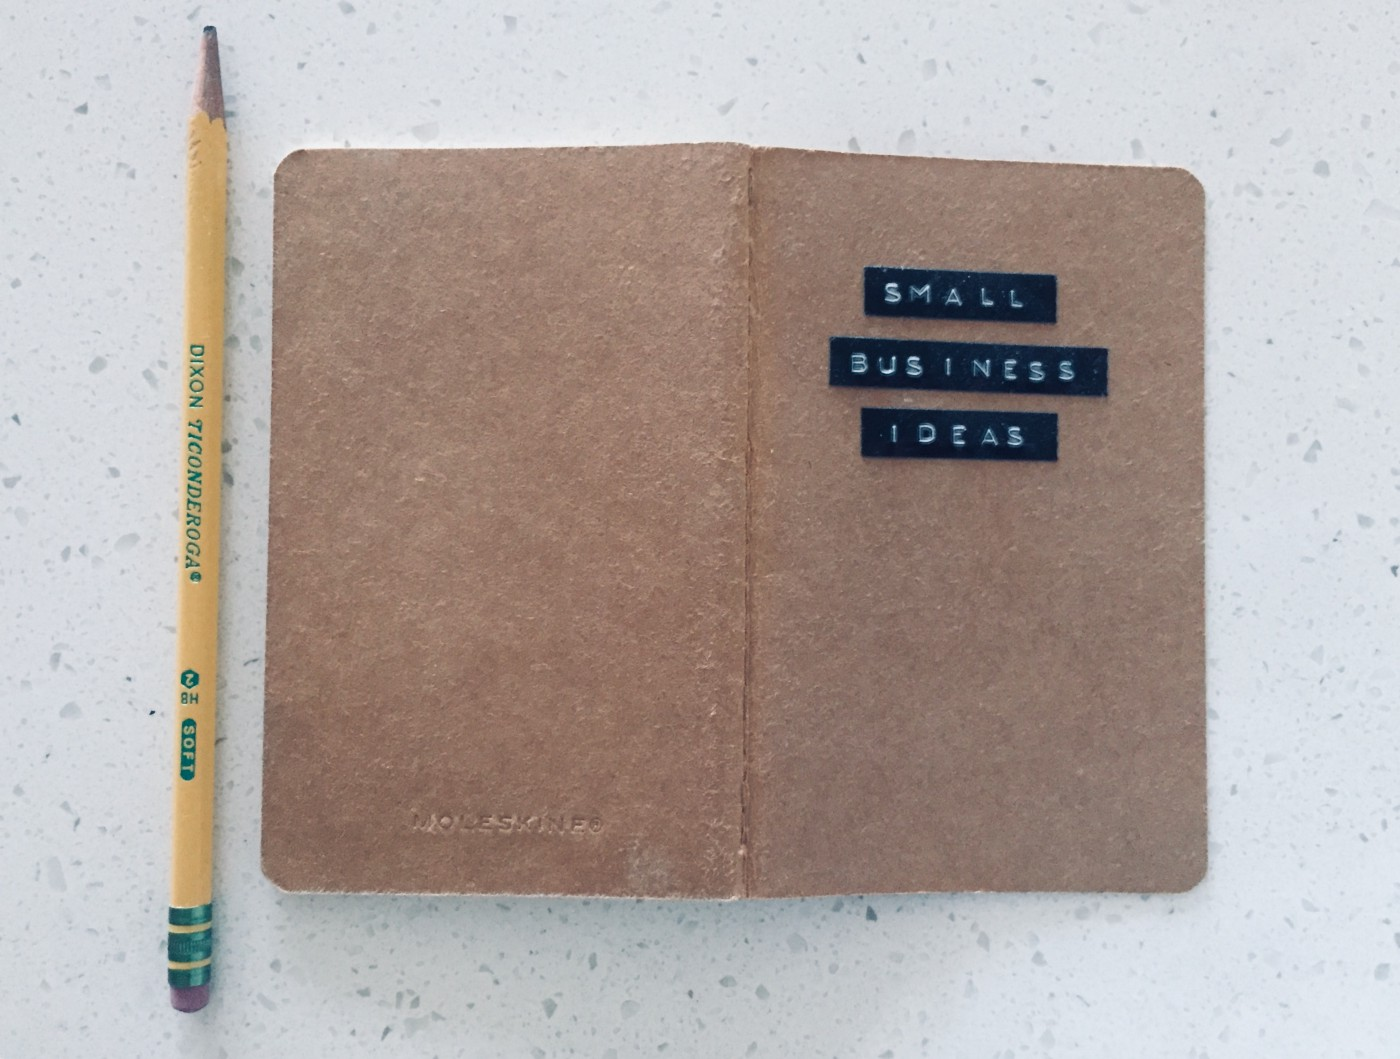 """Pencil and notebook reading """"Small Business Ideas"""""""